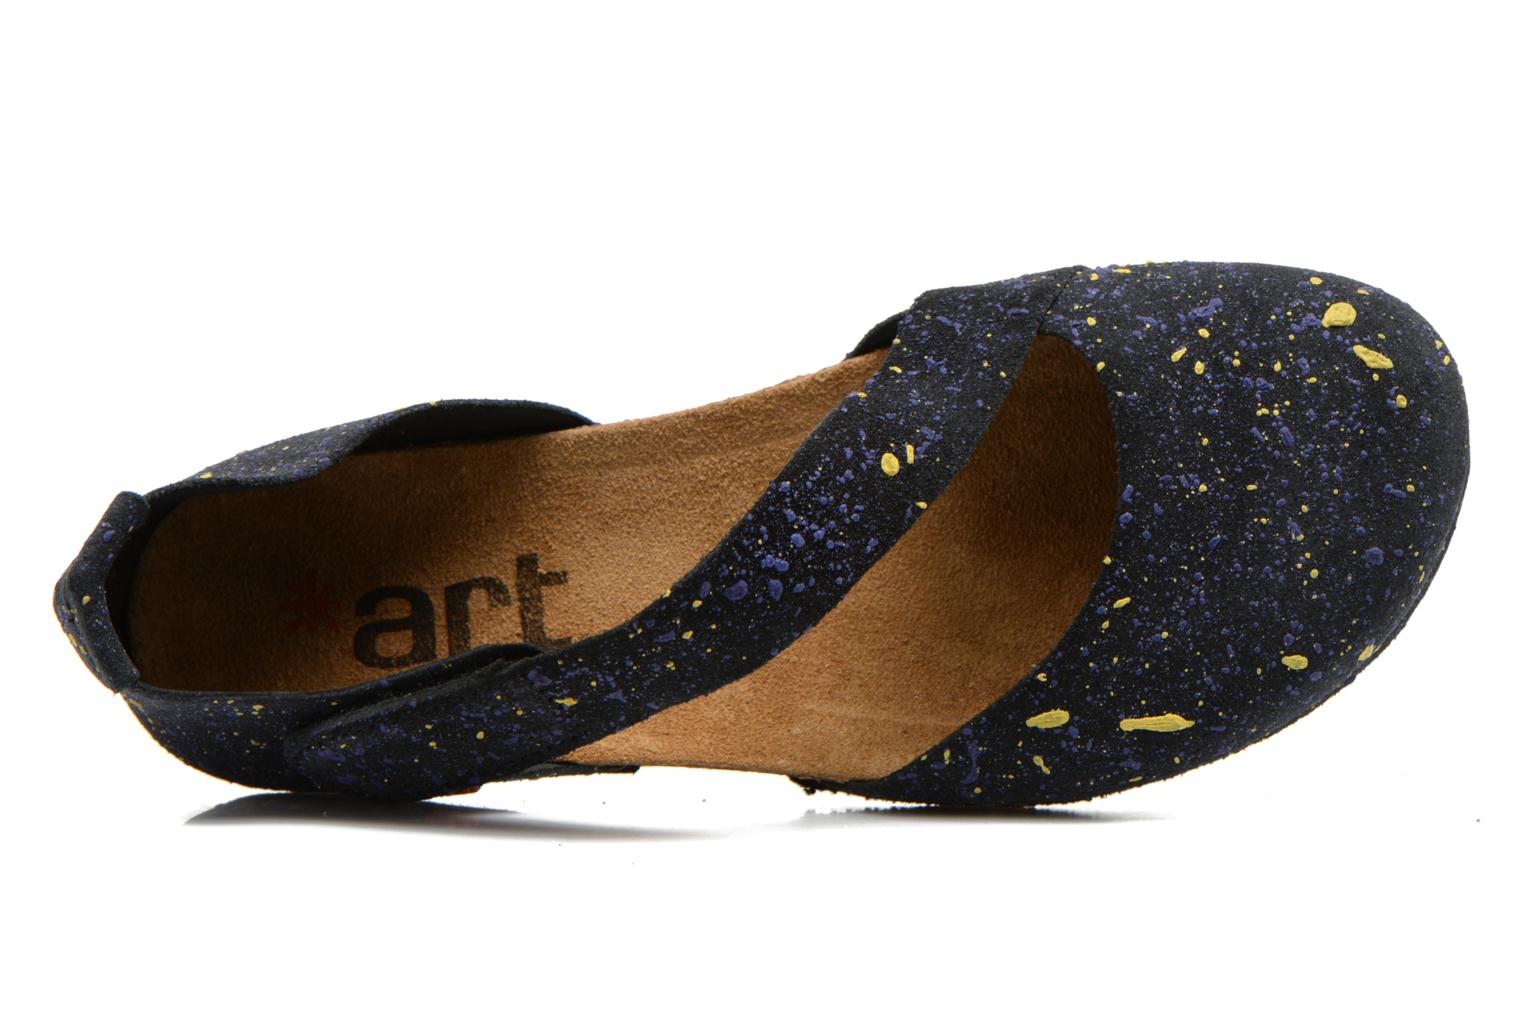 Creta 442 Resin Dotted black